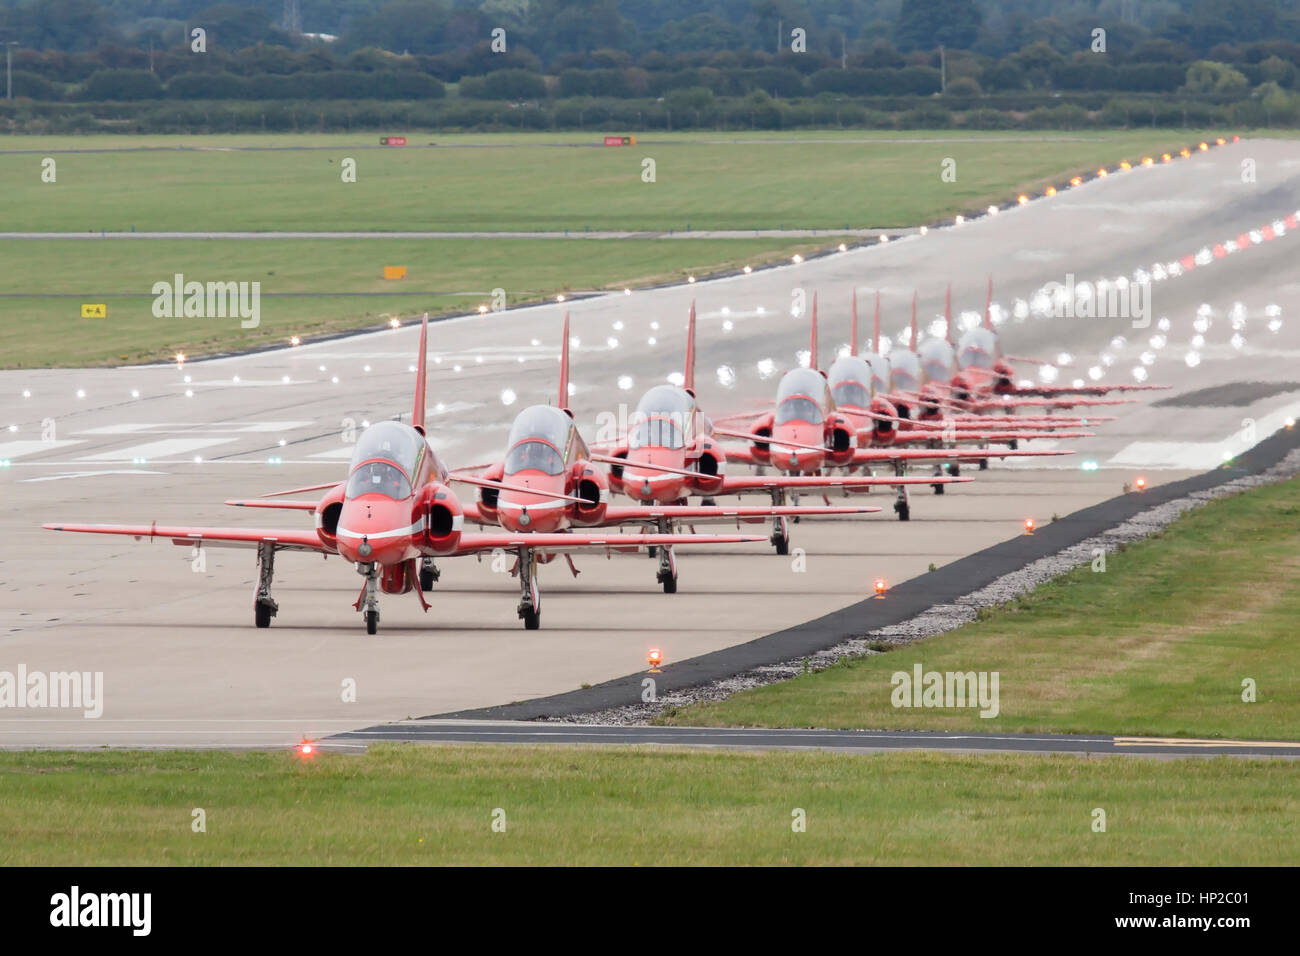 Royal Air Force Red Arrows Aerobatic Display Team taxy for take off at Hawarden Airport, Chester, England, UK after - Stock Image